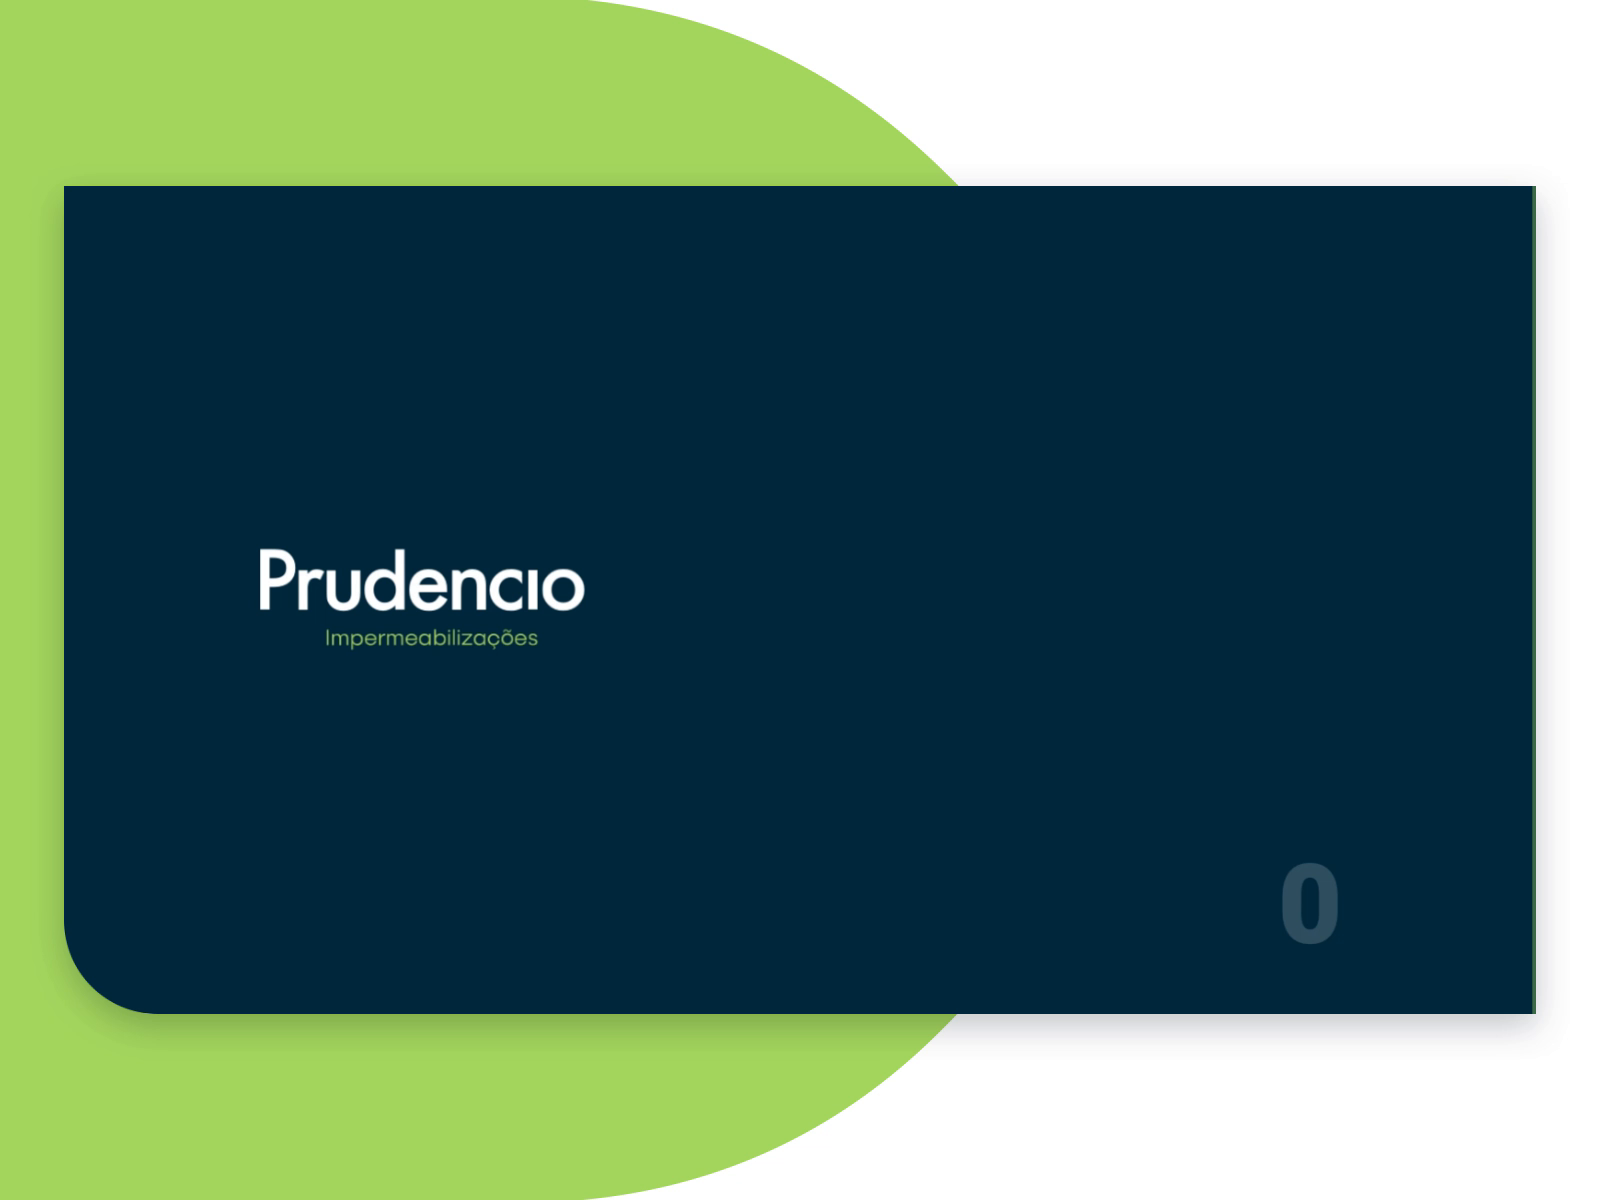 Prudencio - Homepage Intro Animation